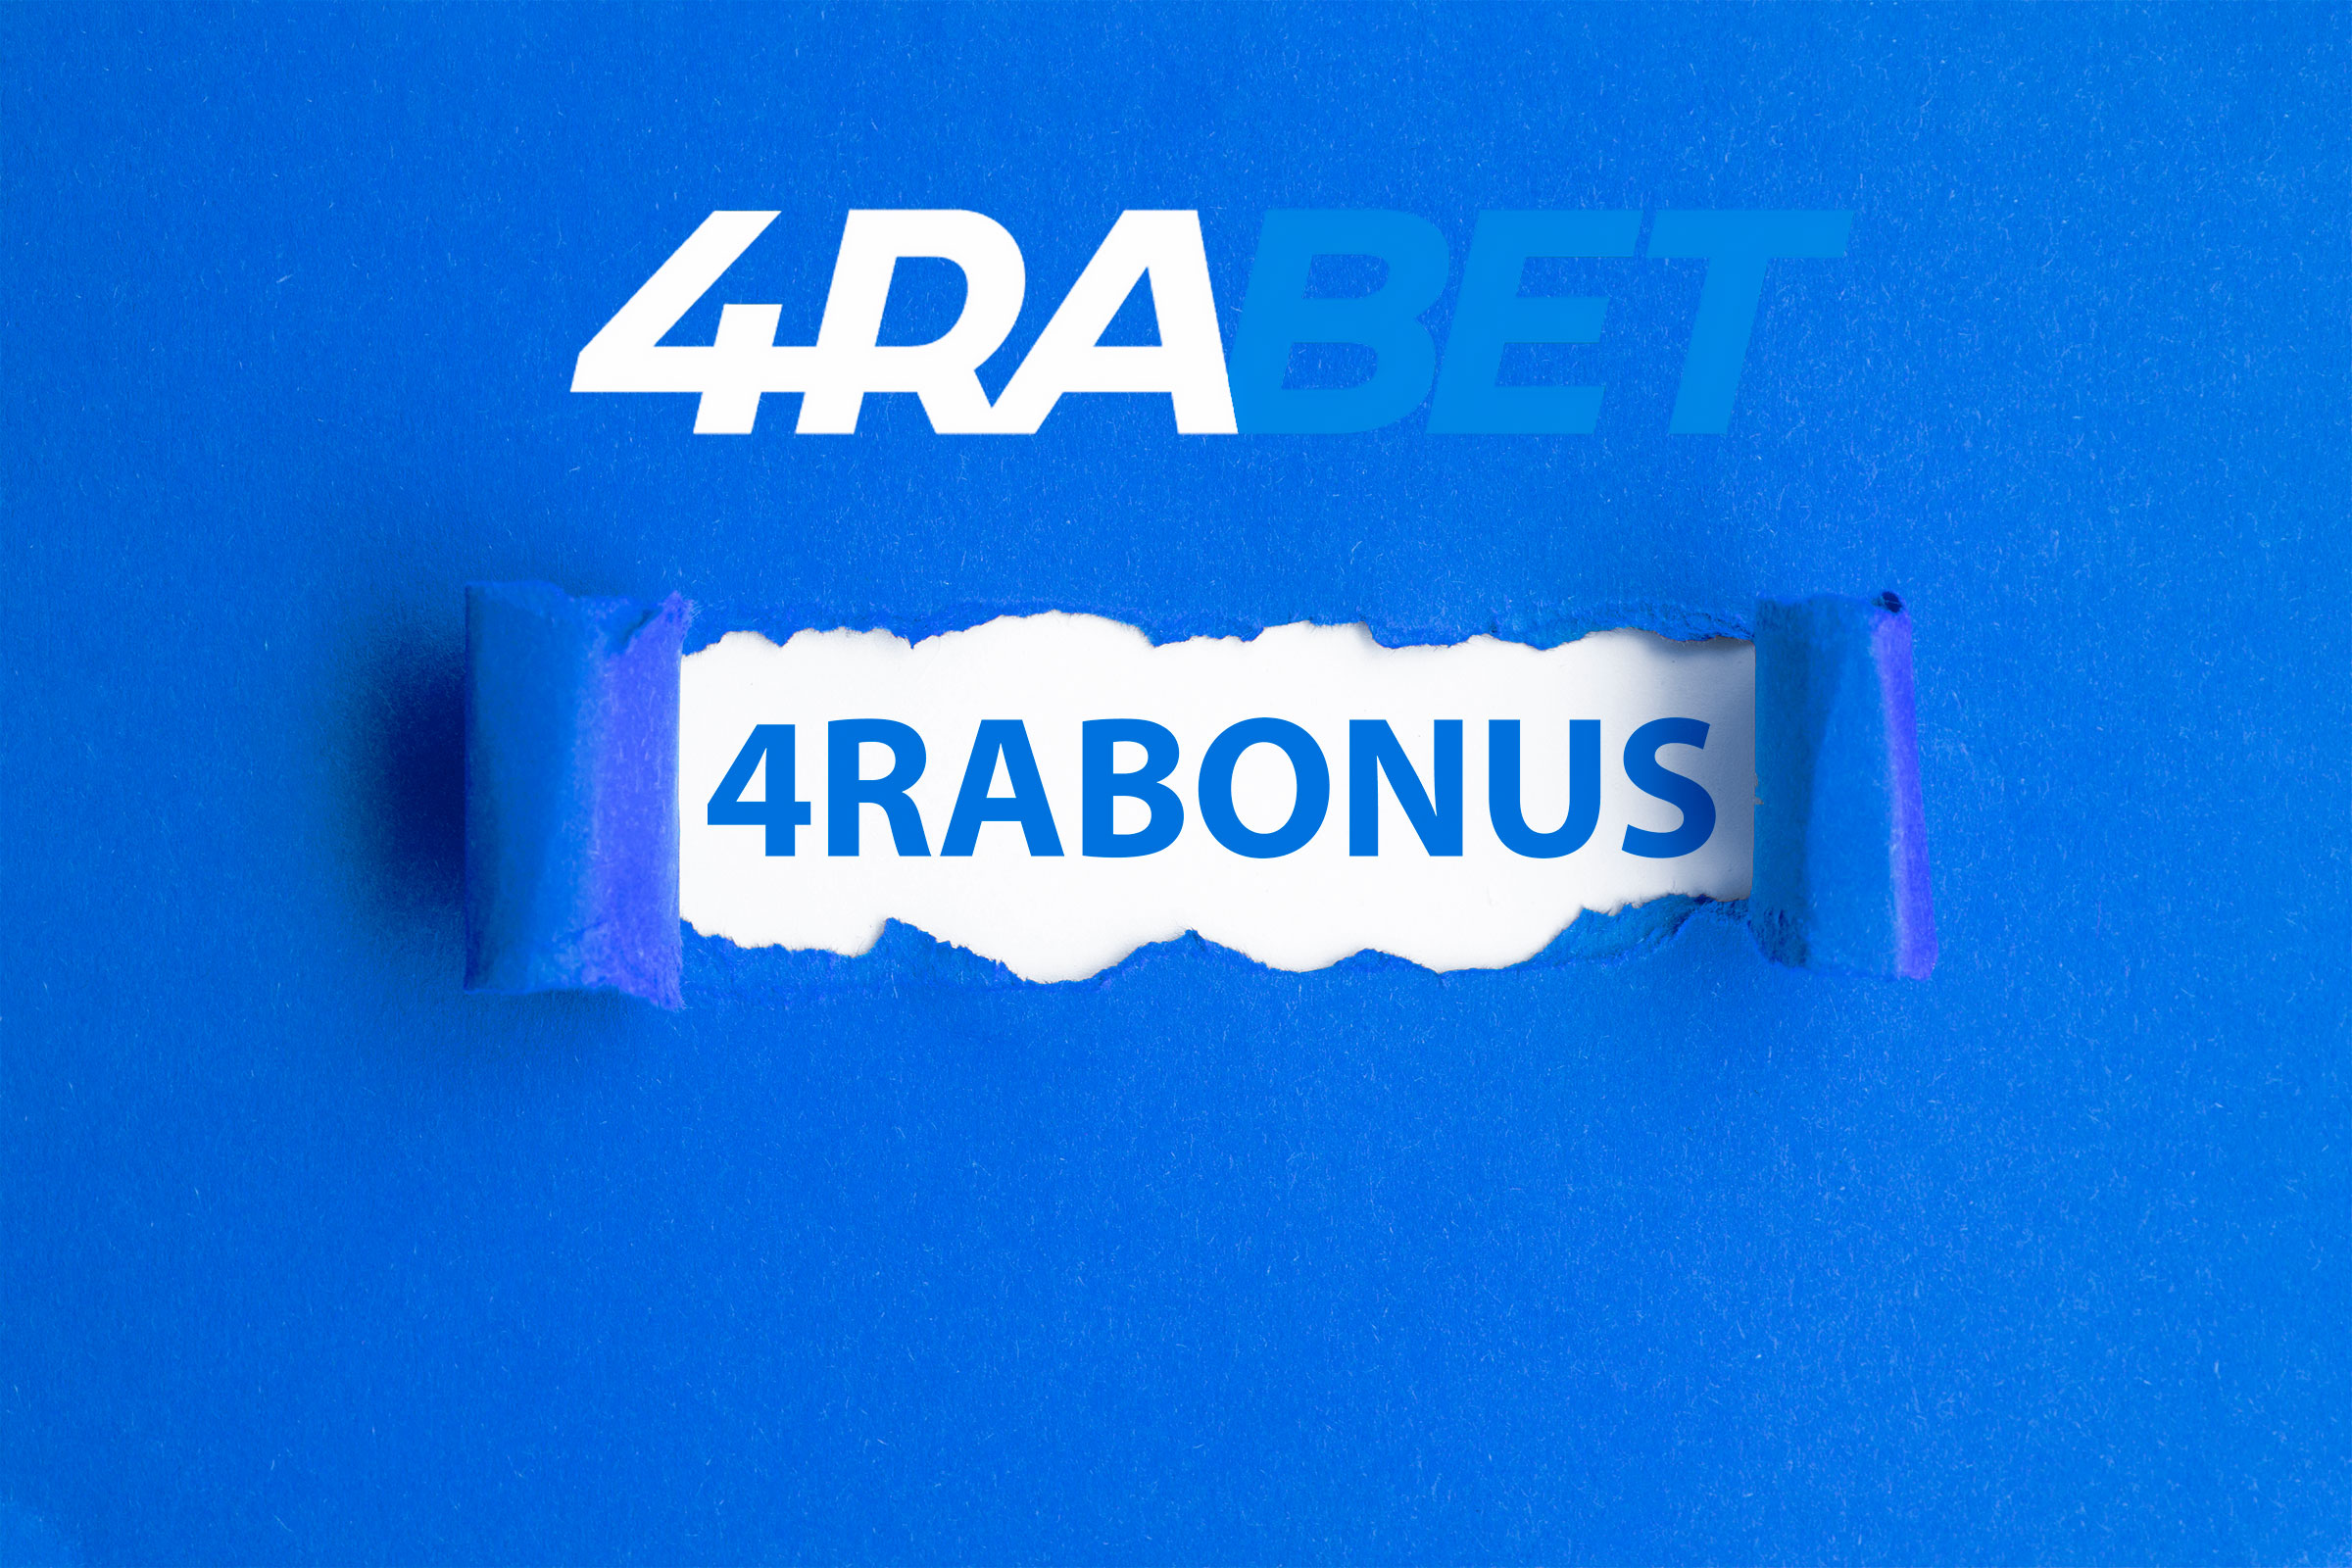 Use promo code 4RABONUS when you register your account and get a 200 percent bonus on your first deposit!